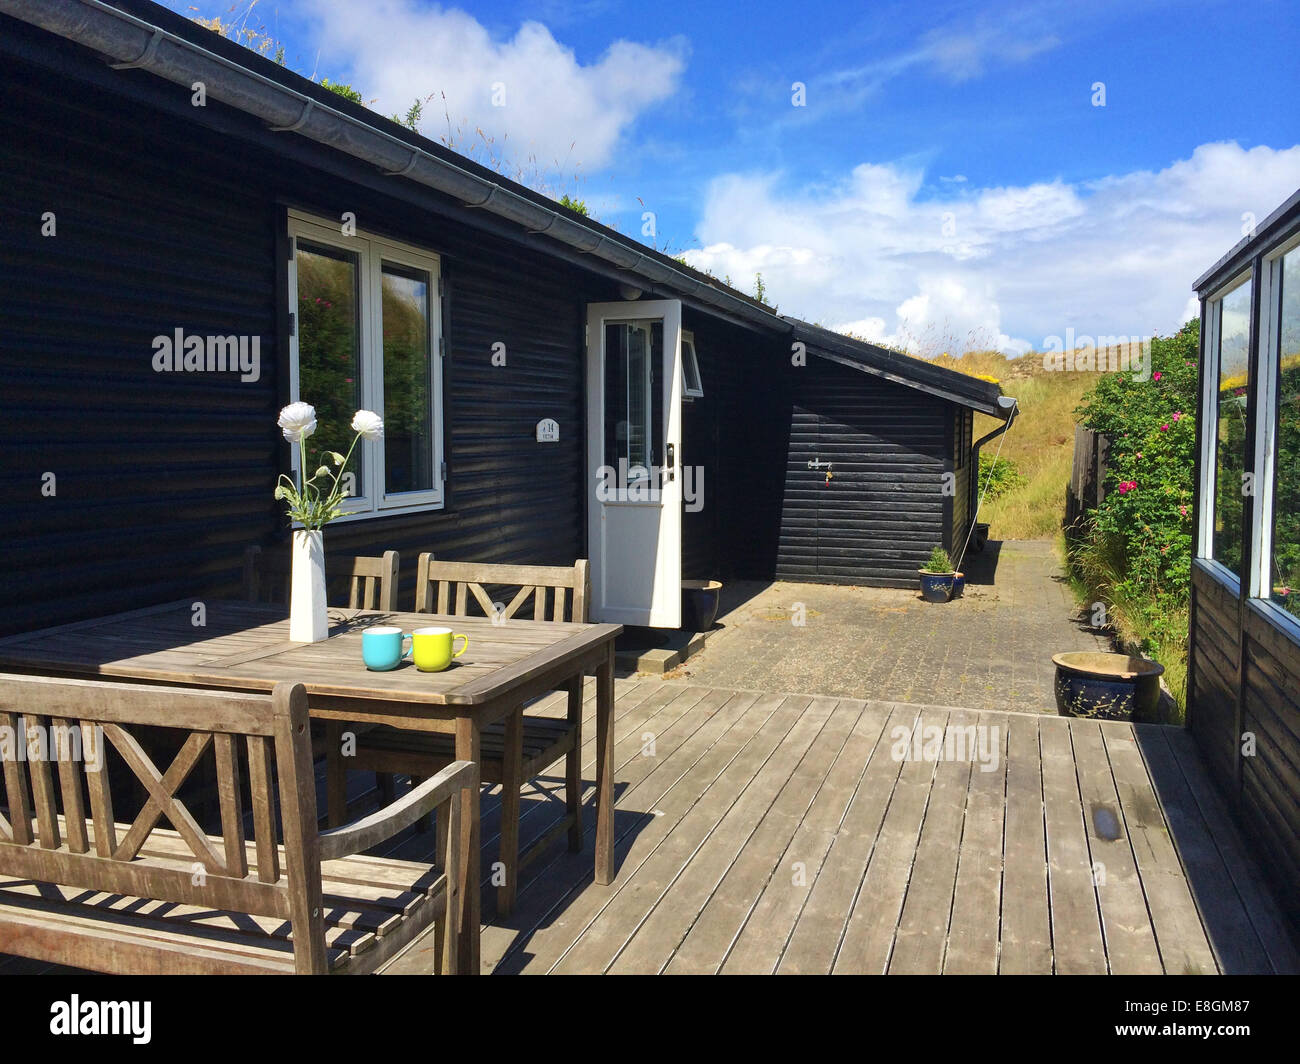 Summerhouse terrace with table and chairs, Fanoe, Denmark - Stock Image